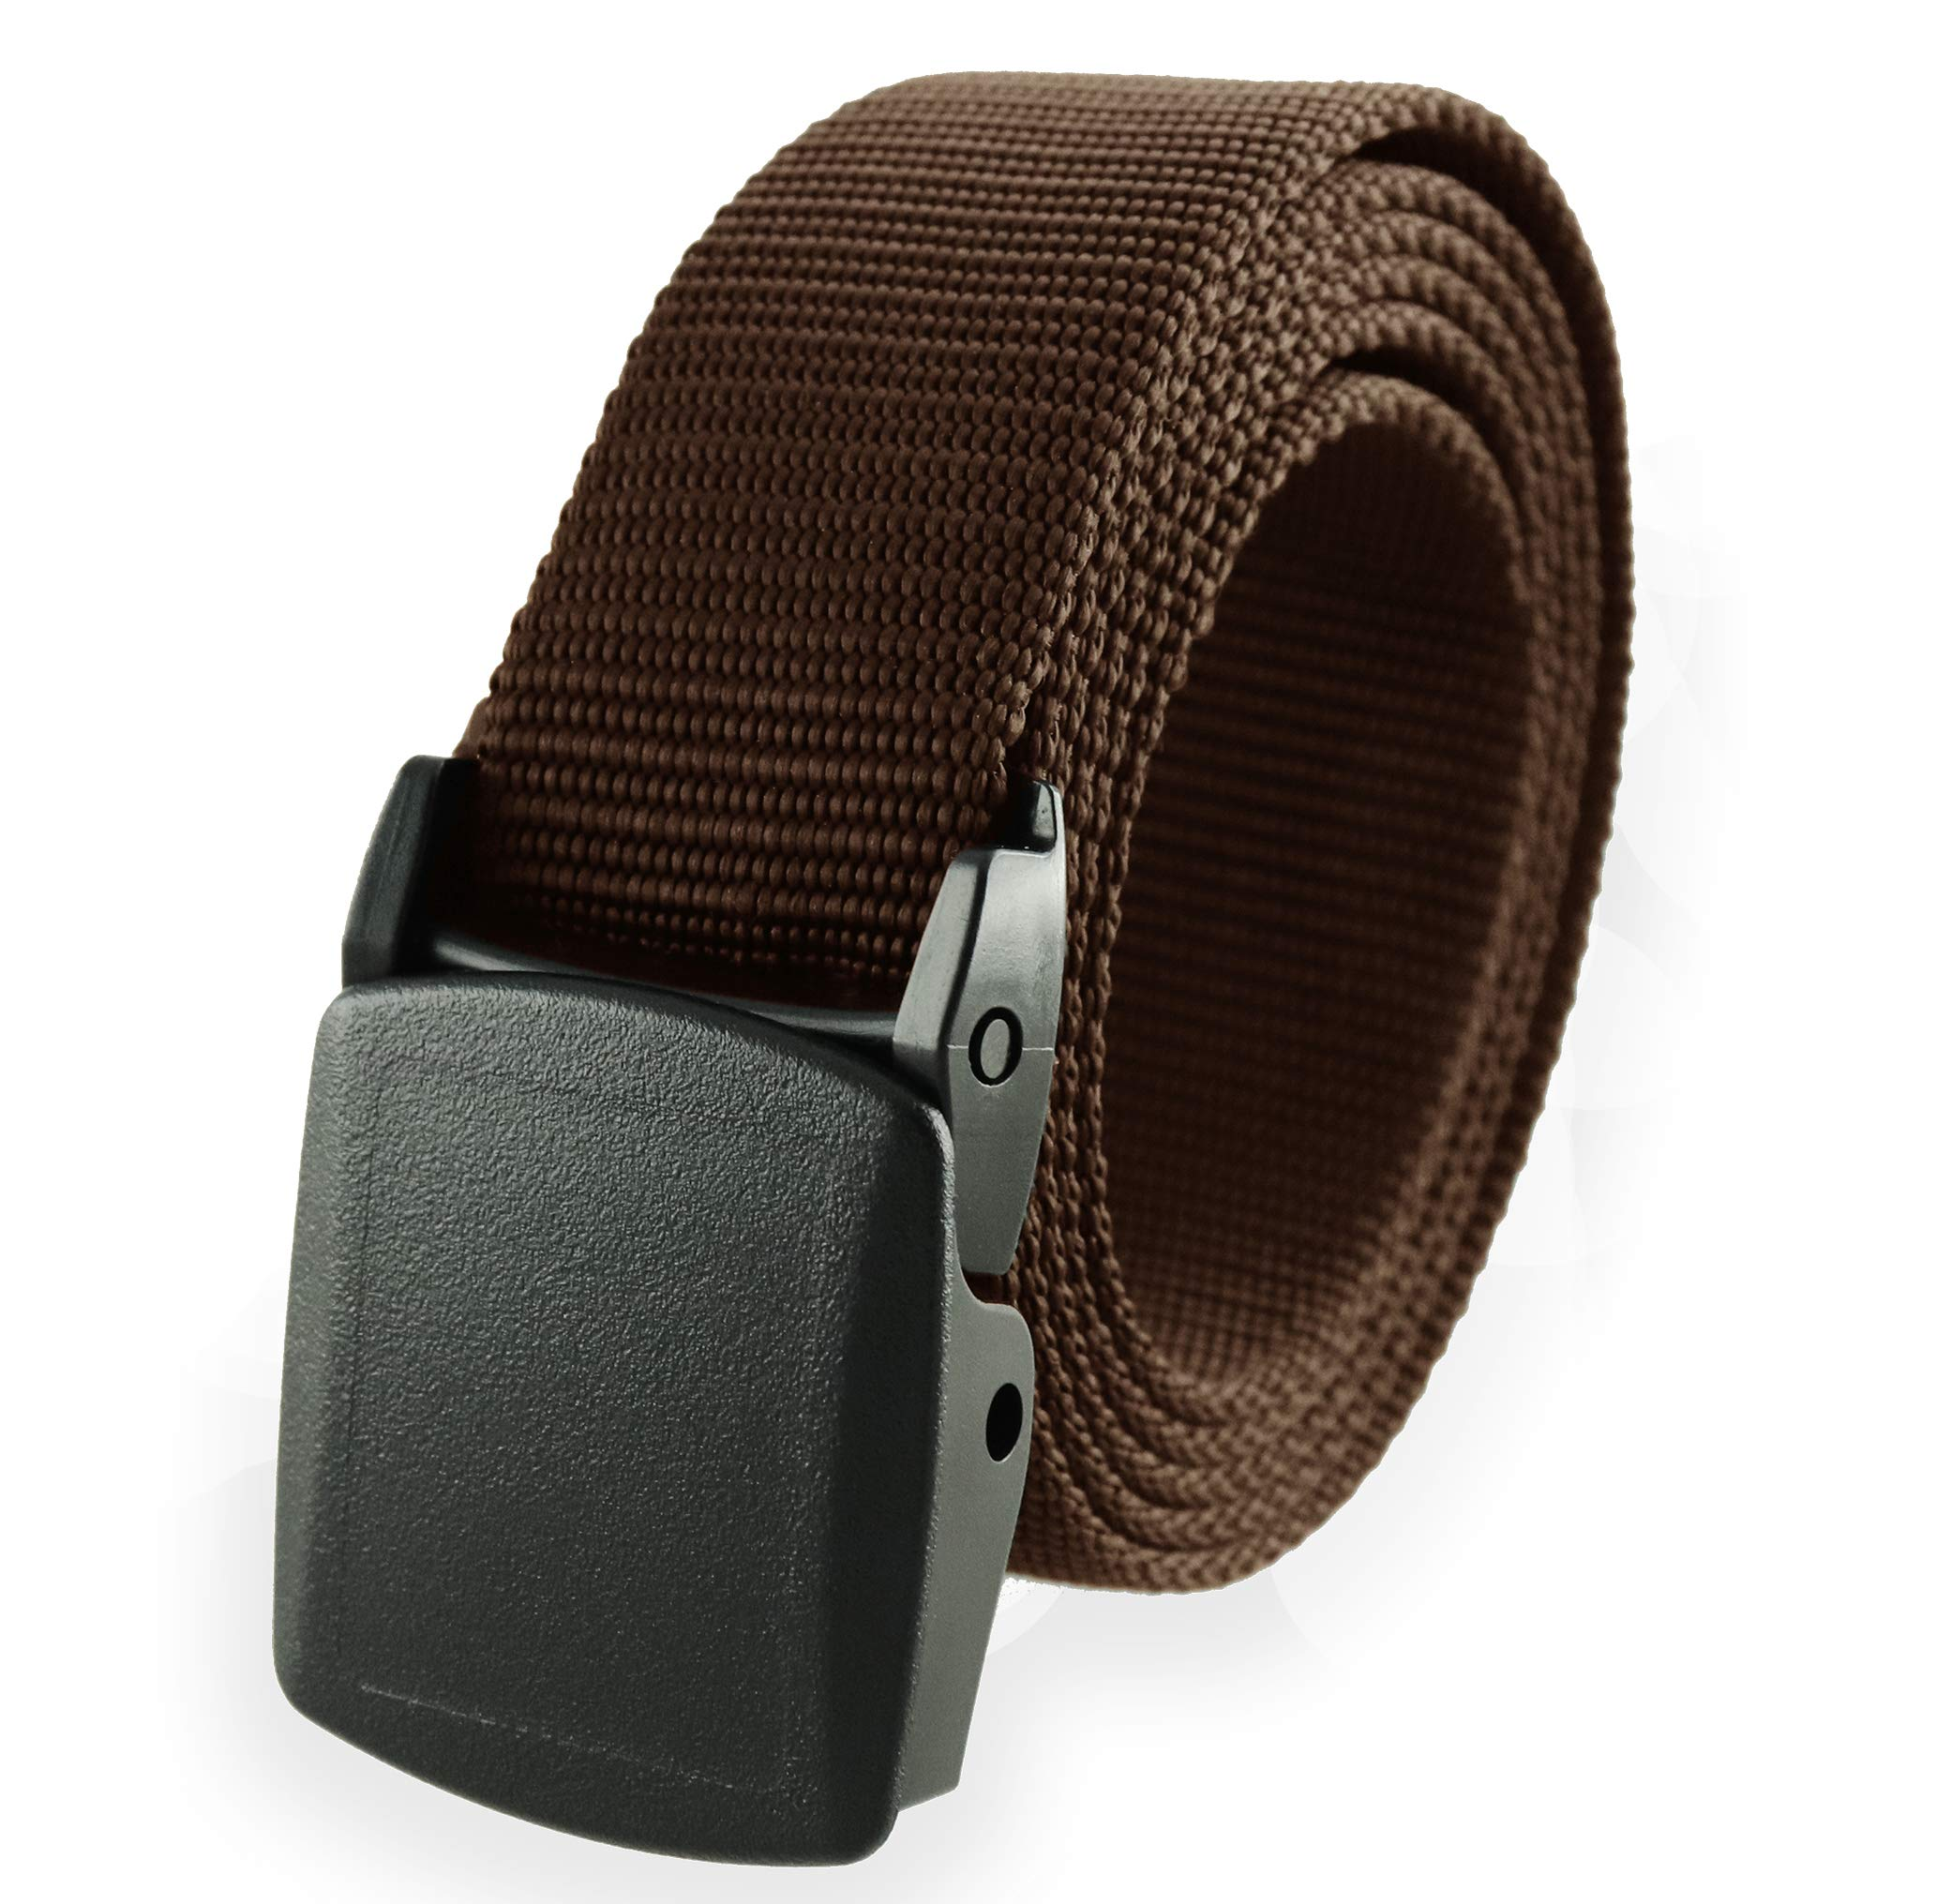 "Thomas Bates Nylon Web Belt Outdoor Breathable Trekker, Metal-Free Buckle 1-1/4"" Cut-to-size Made in USA (Brown)"